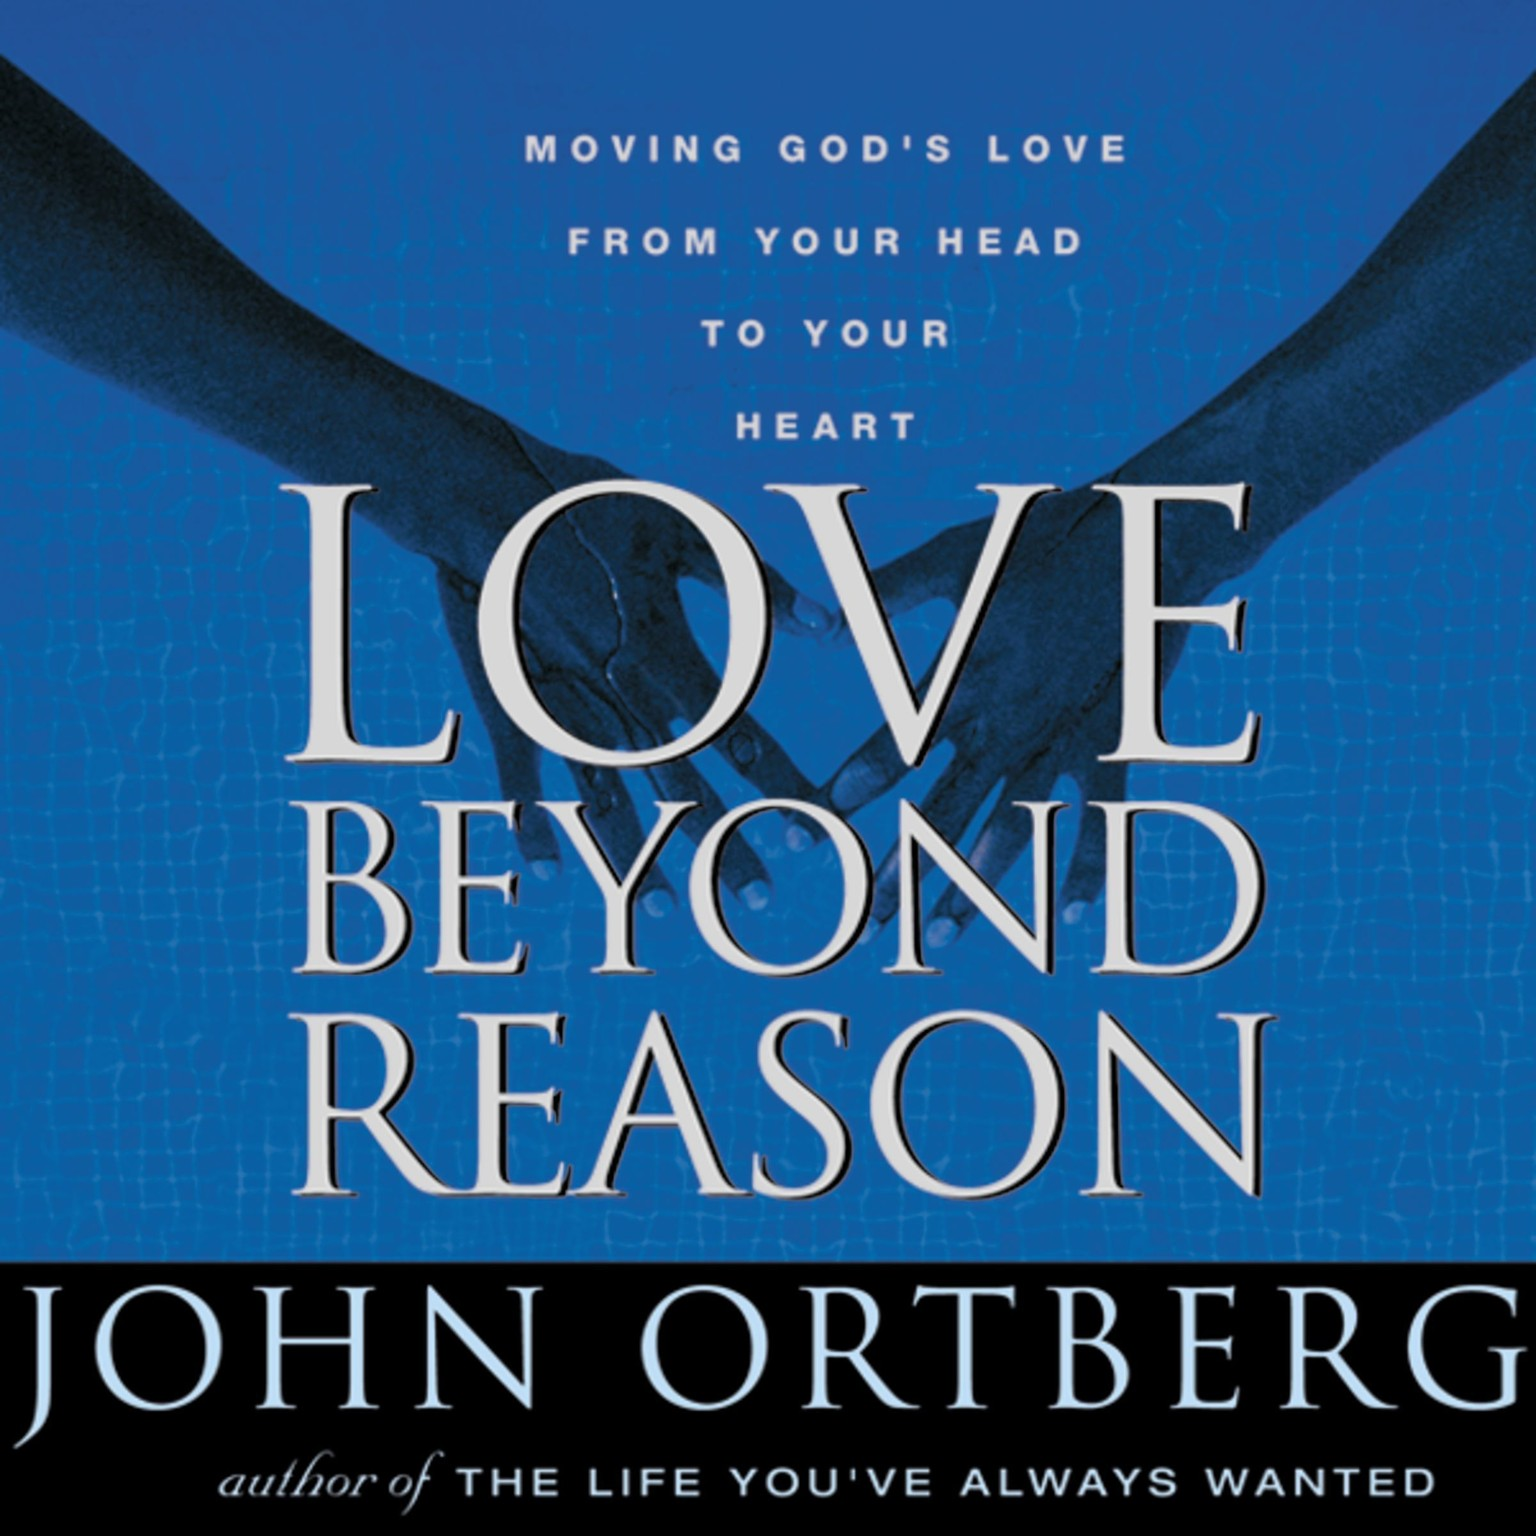 Printable Love Beyond Reason: Moving God's Love from Your Head to Your Heart Audiobook Cover Art